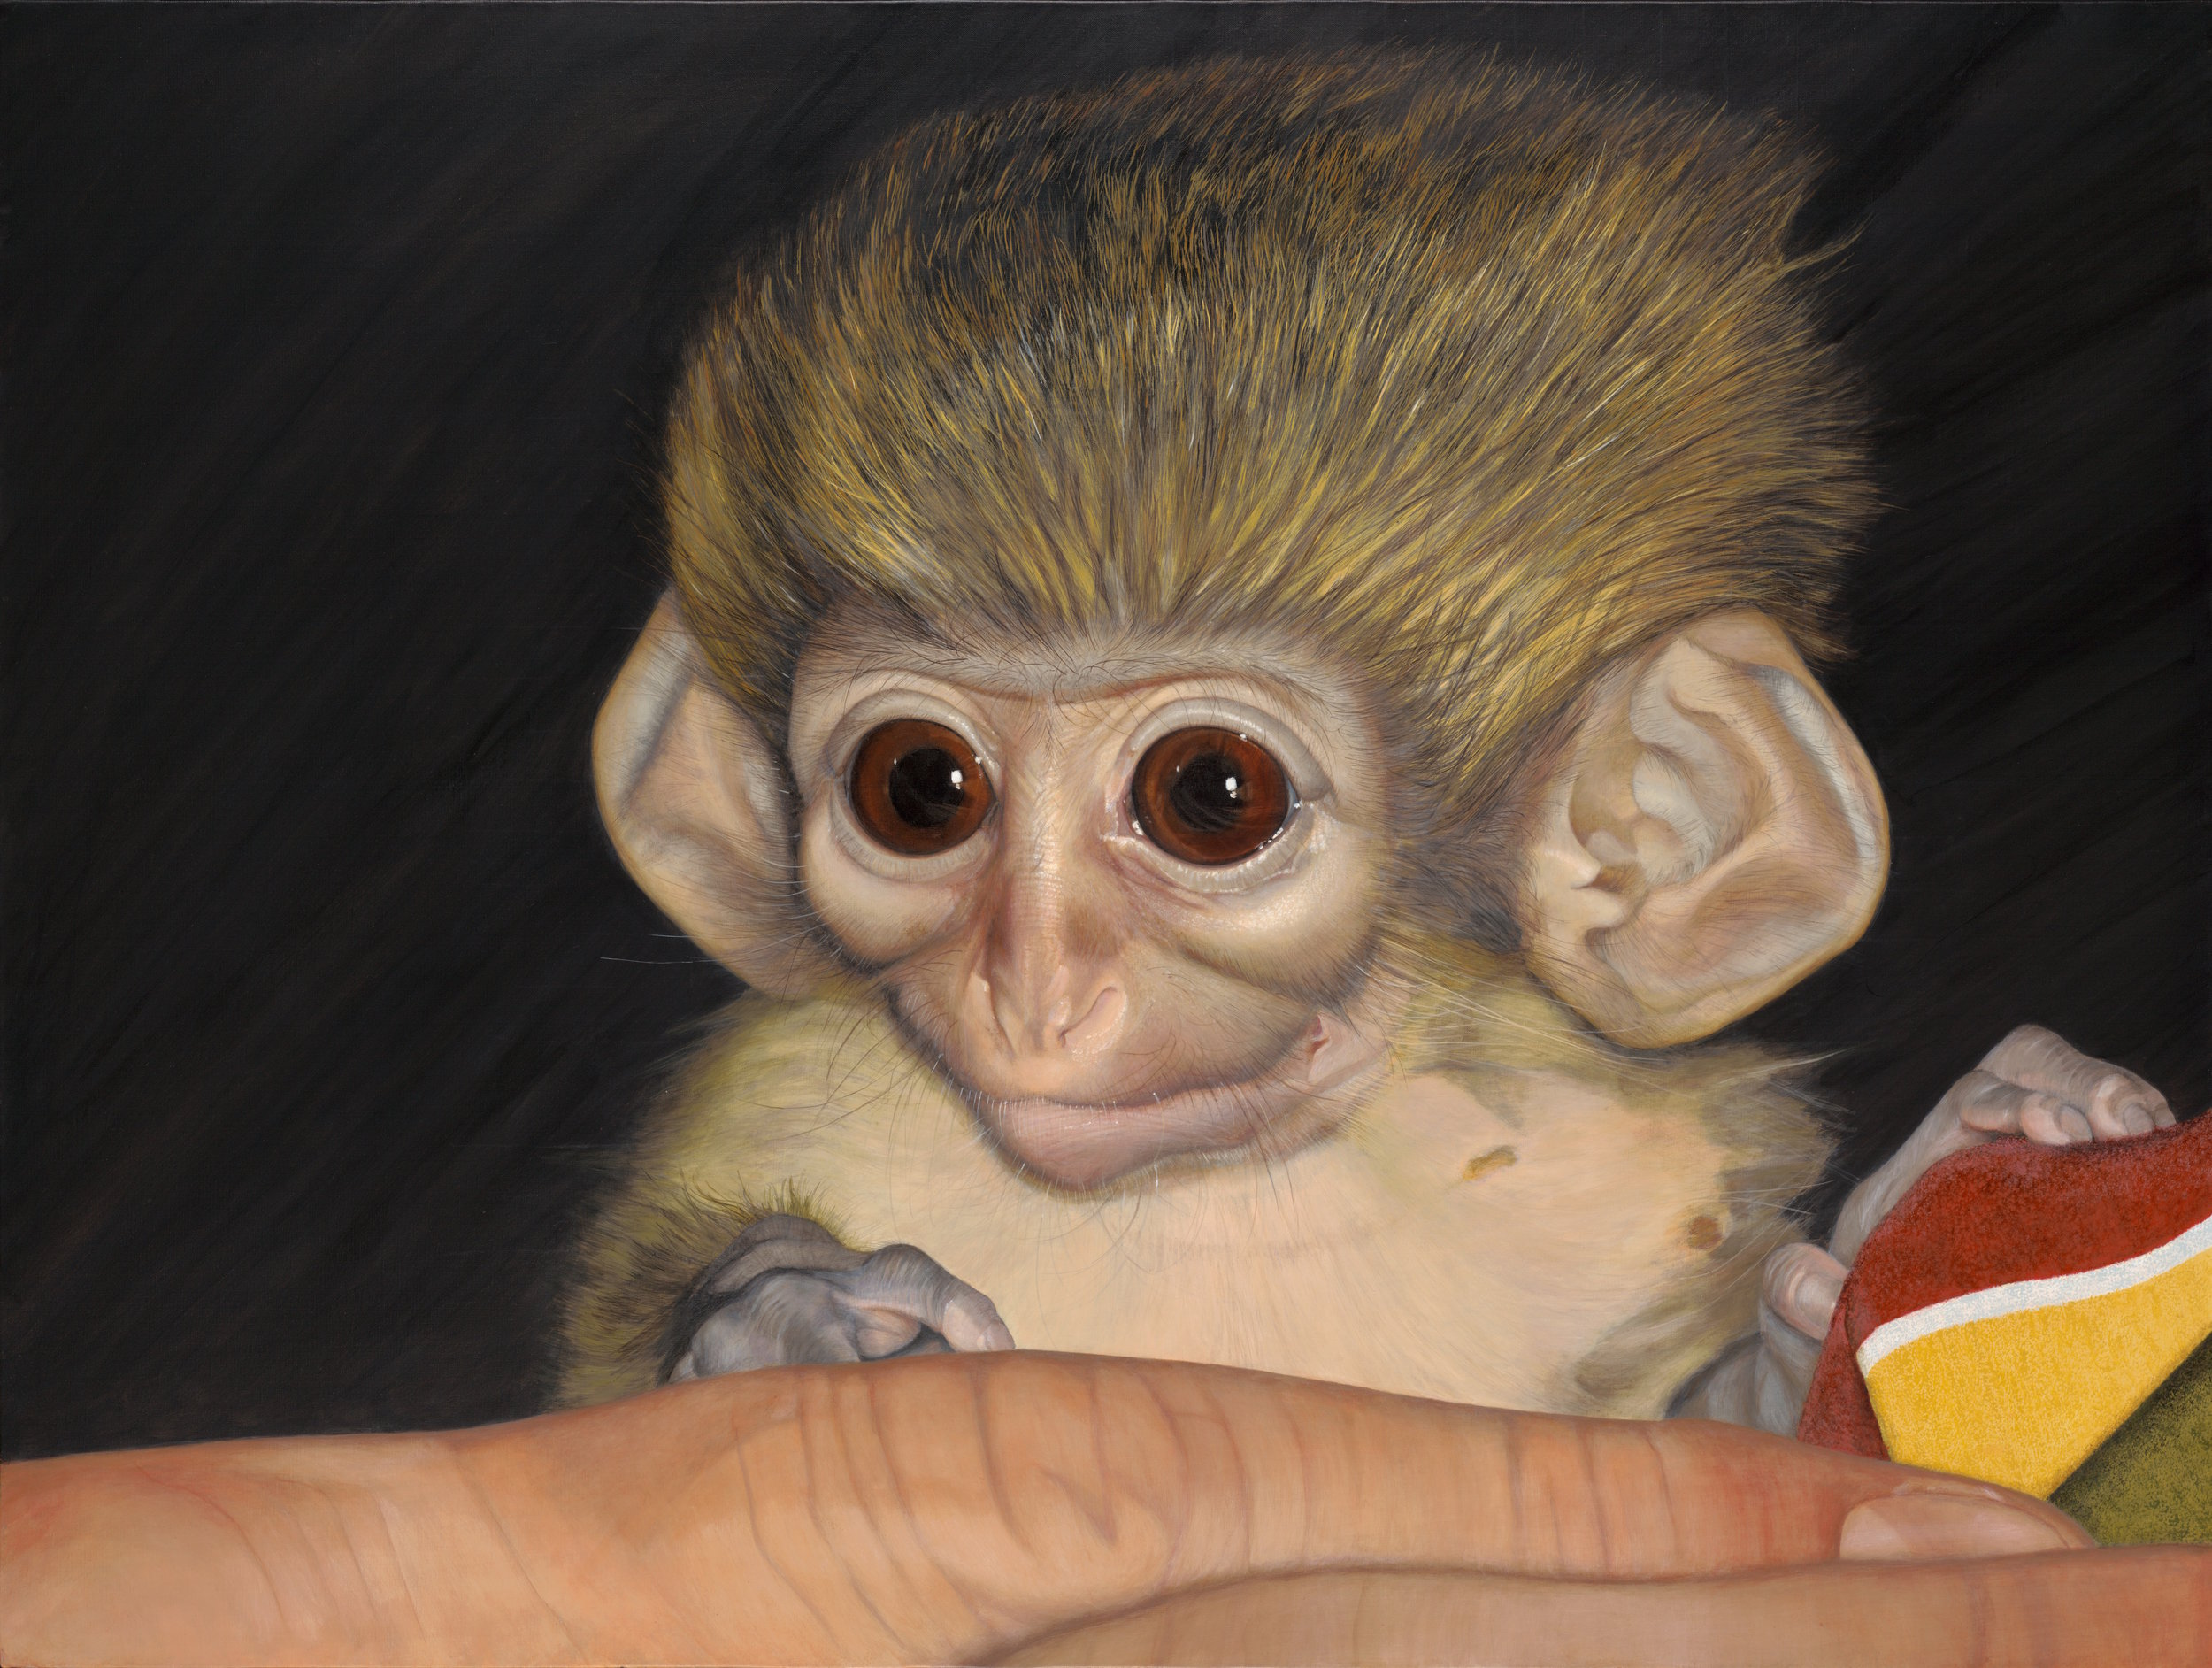 PORTRAIT OF YODA, A TALAPOIN MONKEY. THIS IS ONE OF THE MANY ORPHANED AND TRAUMATIZED BABY PRIMATES RESCUED AND RAISED AT APE ACTION AFRICA. PAINTING BY © ROBIN HUFFMAN, ACRYLIC ON LINEN  36 x 48